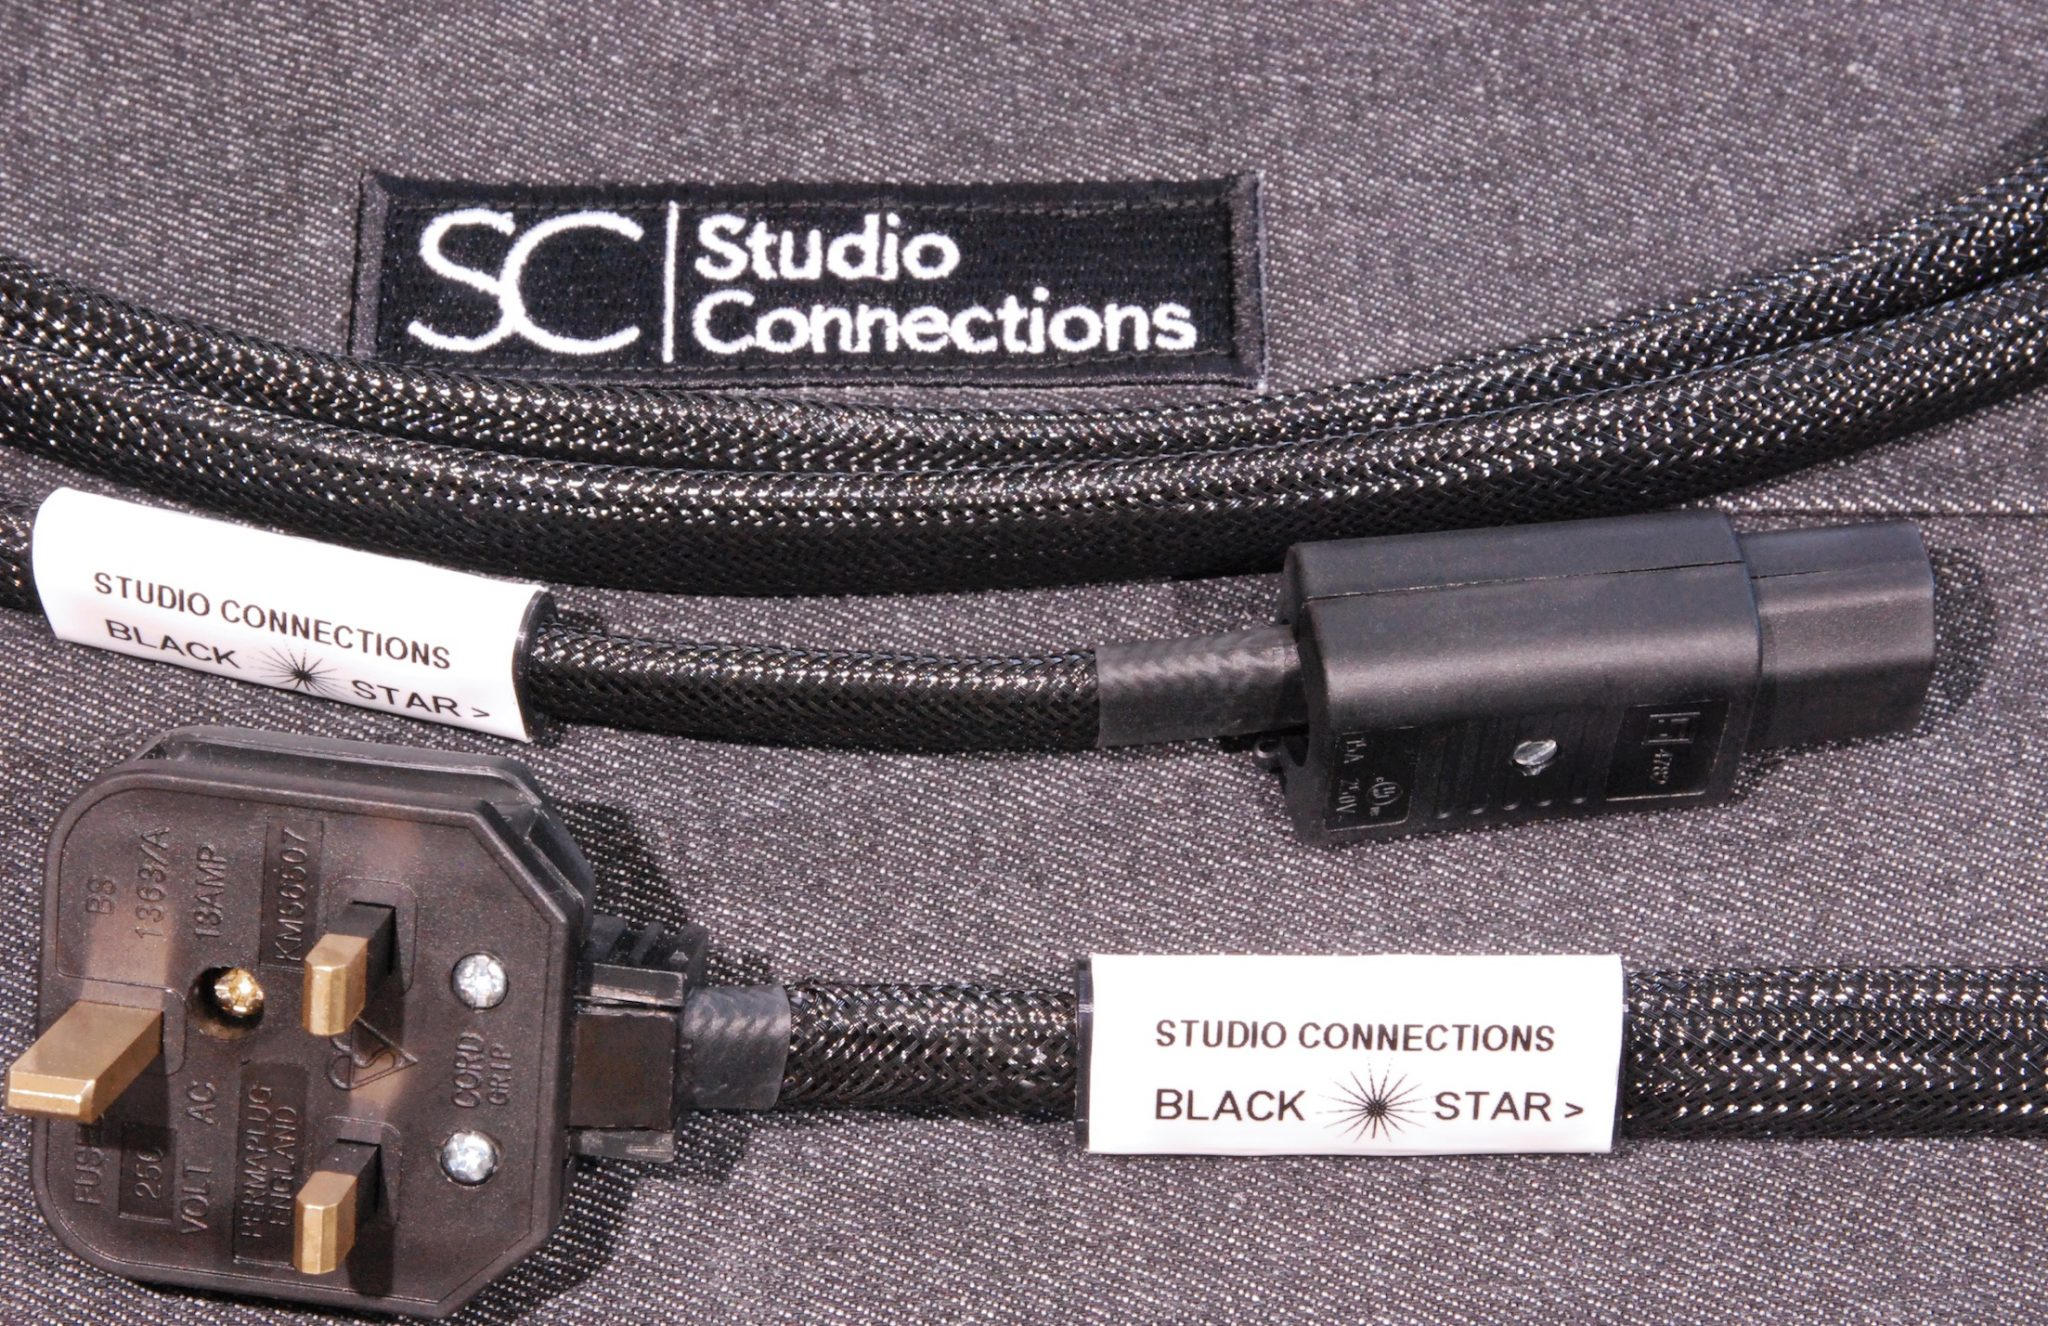 Black Star Cables from Studio Connections